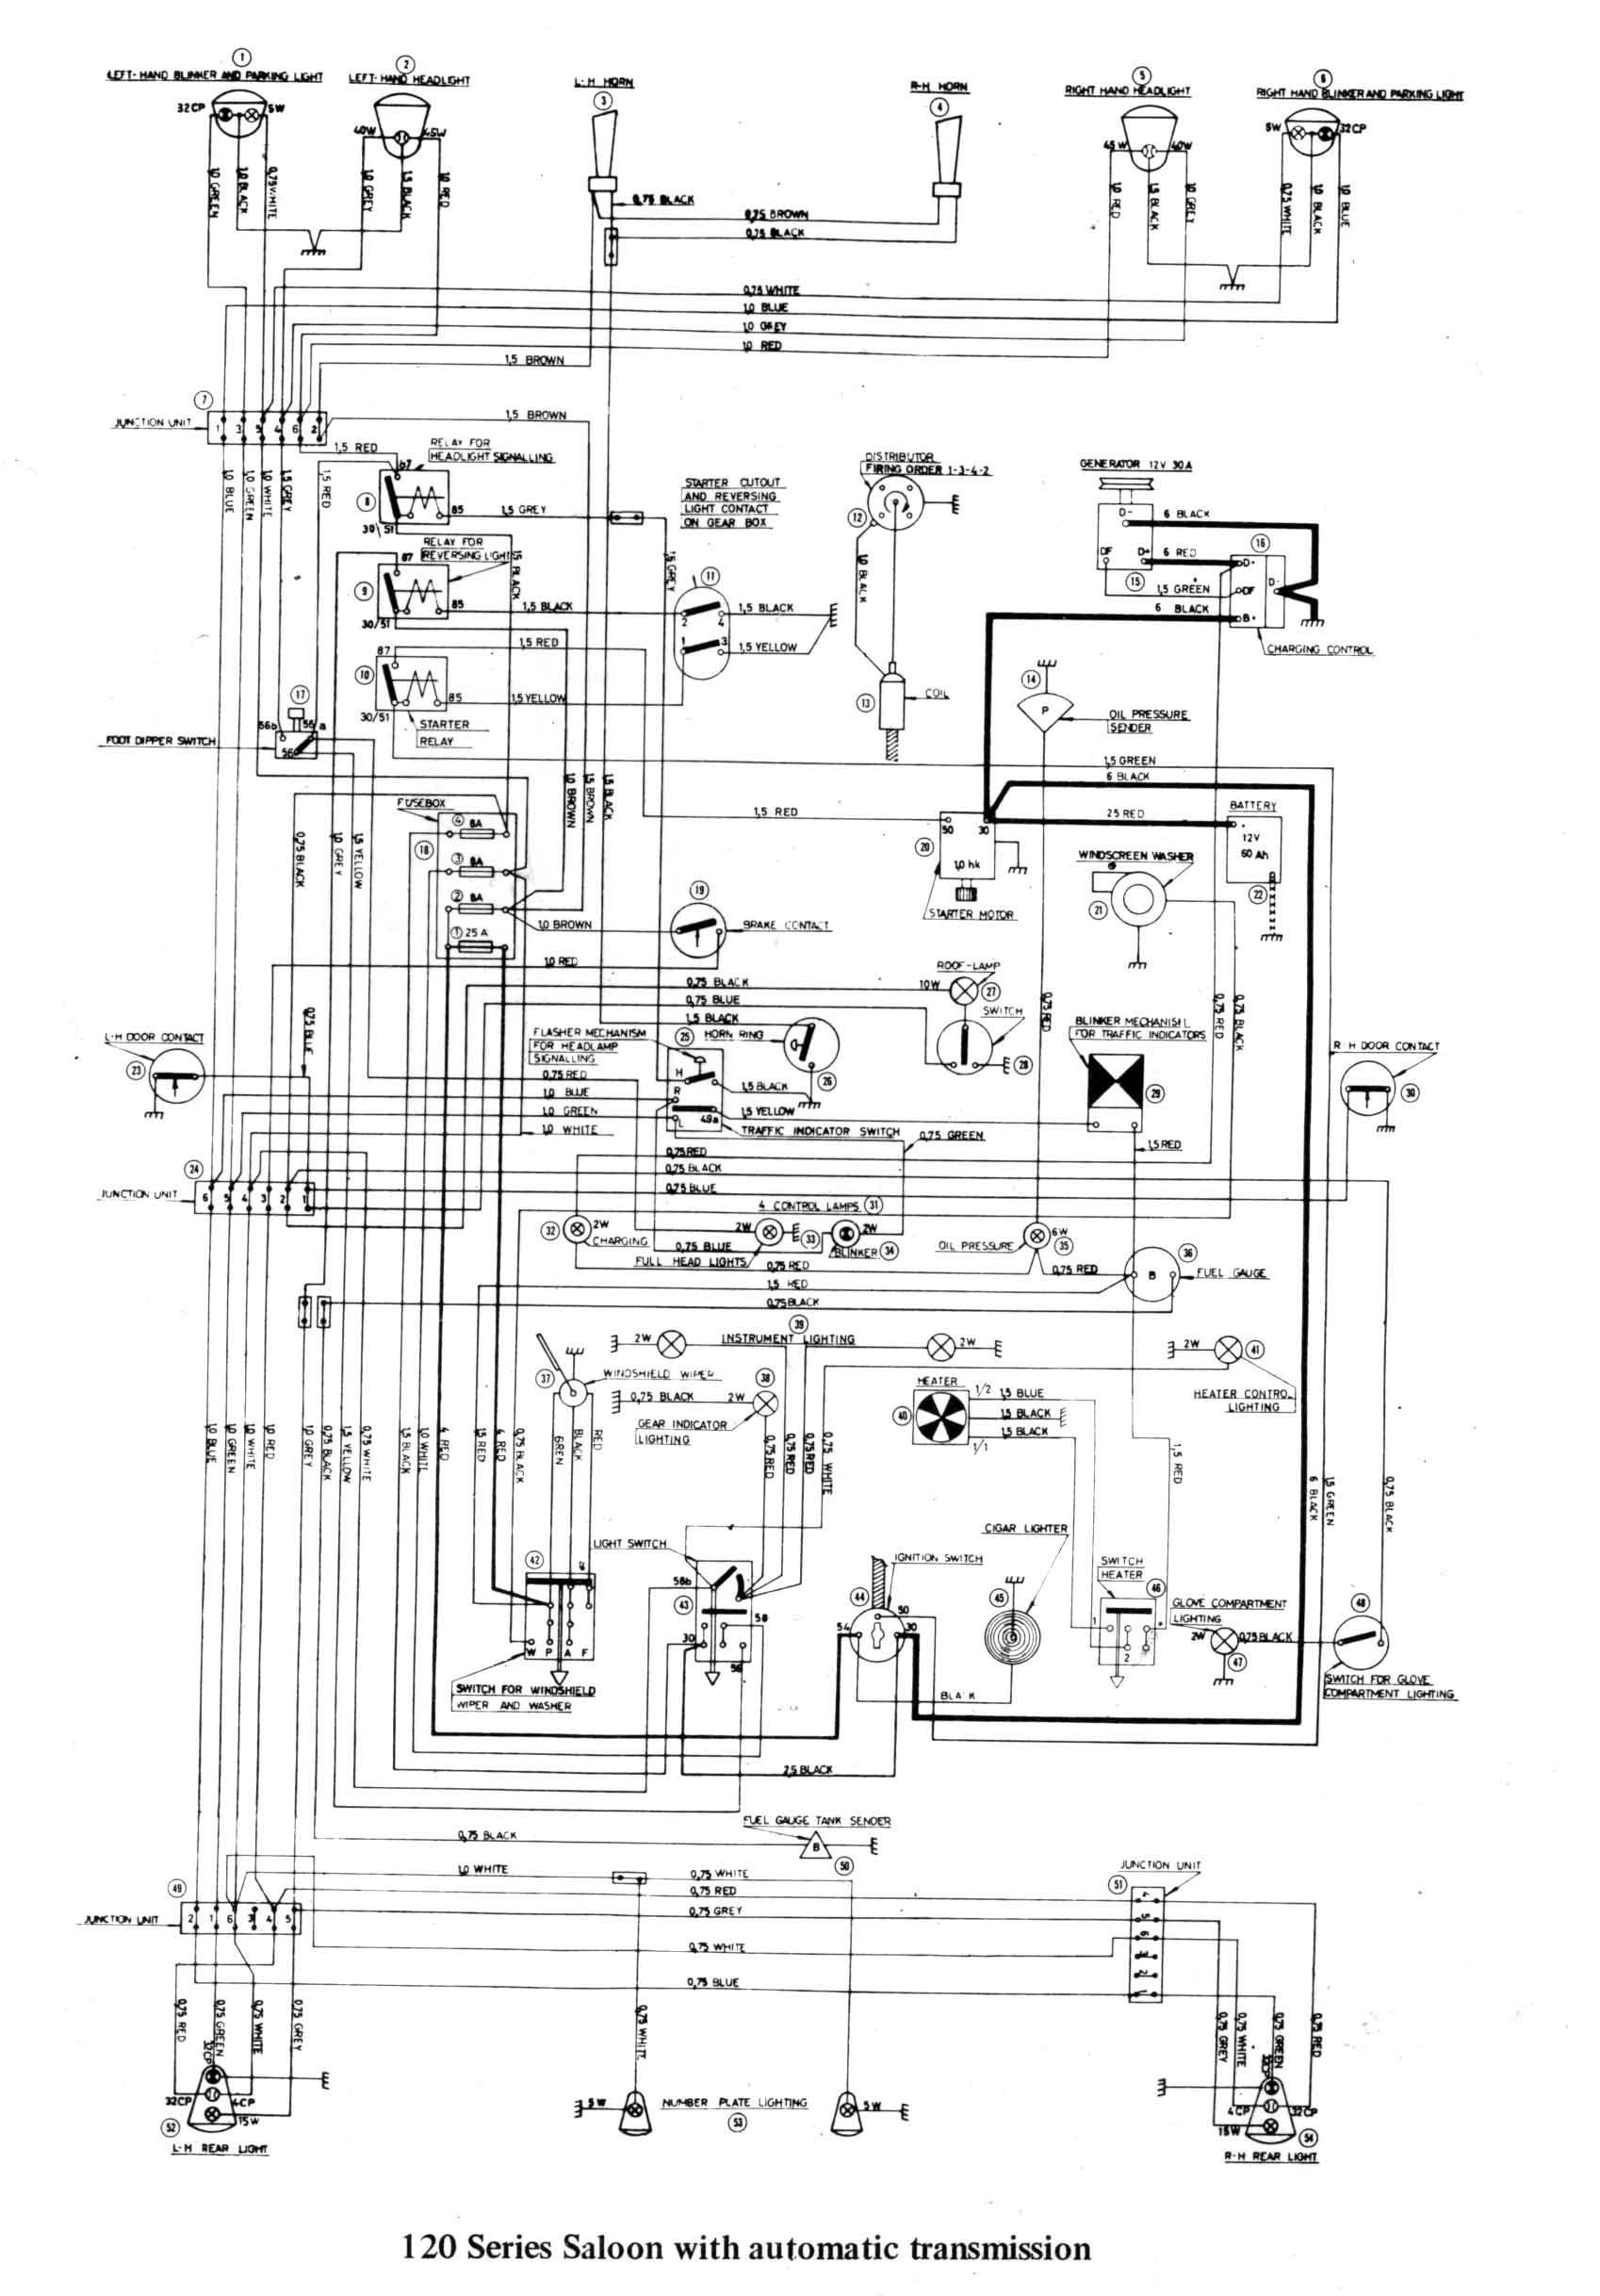 Turn Signal Flasher Diagram 1965 T Bird Wiring Signals Motorcycle Elegant Of Related Post